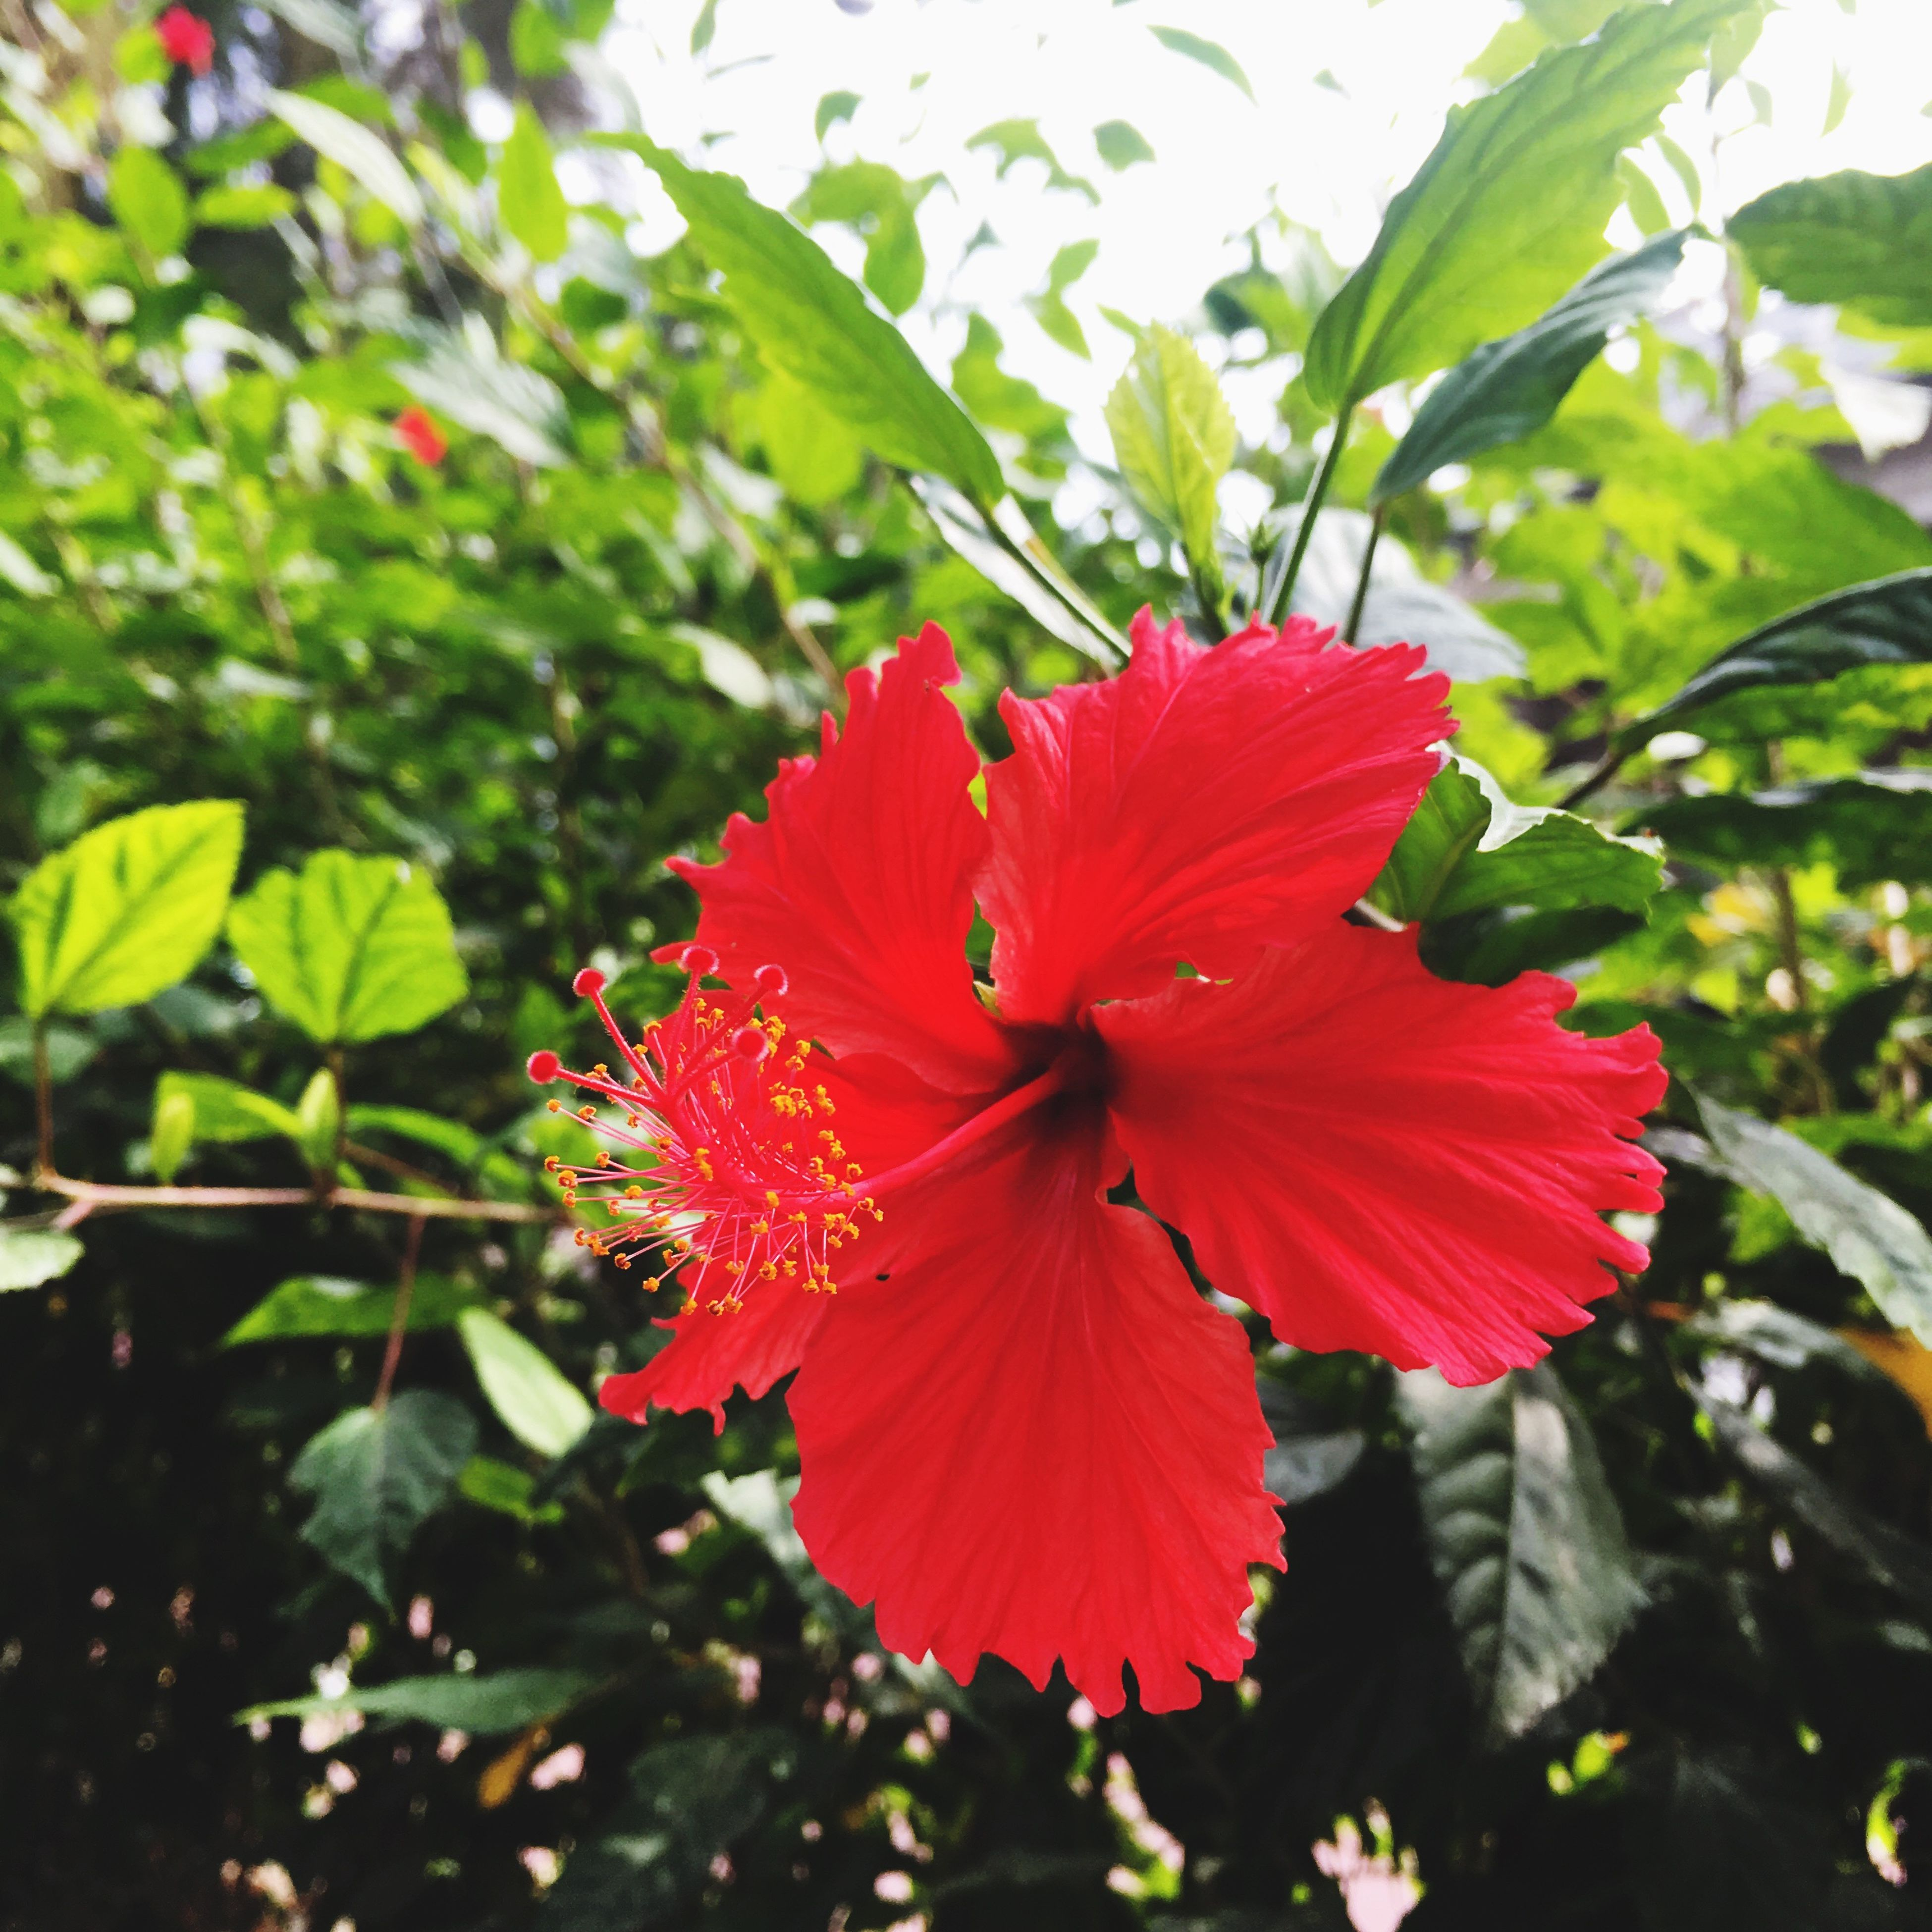 flower, growth, red, petal, nature, fragility, plant, beauty in nature, flower head, blooming, close-up, pollen, green color, freshness, no people, leaf, day, outdoors, pistil